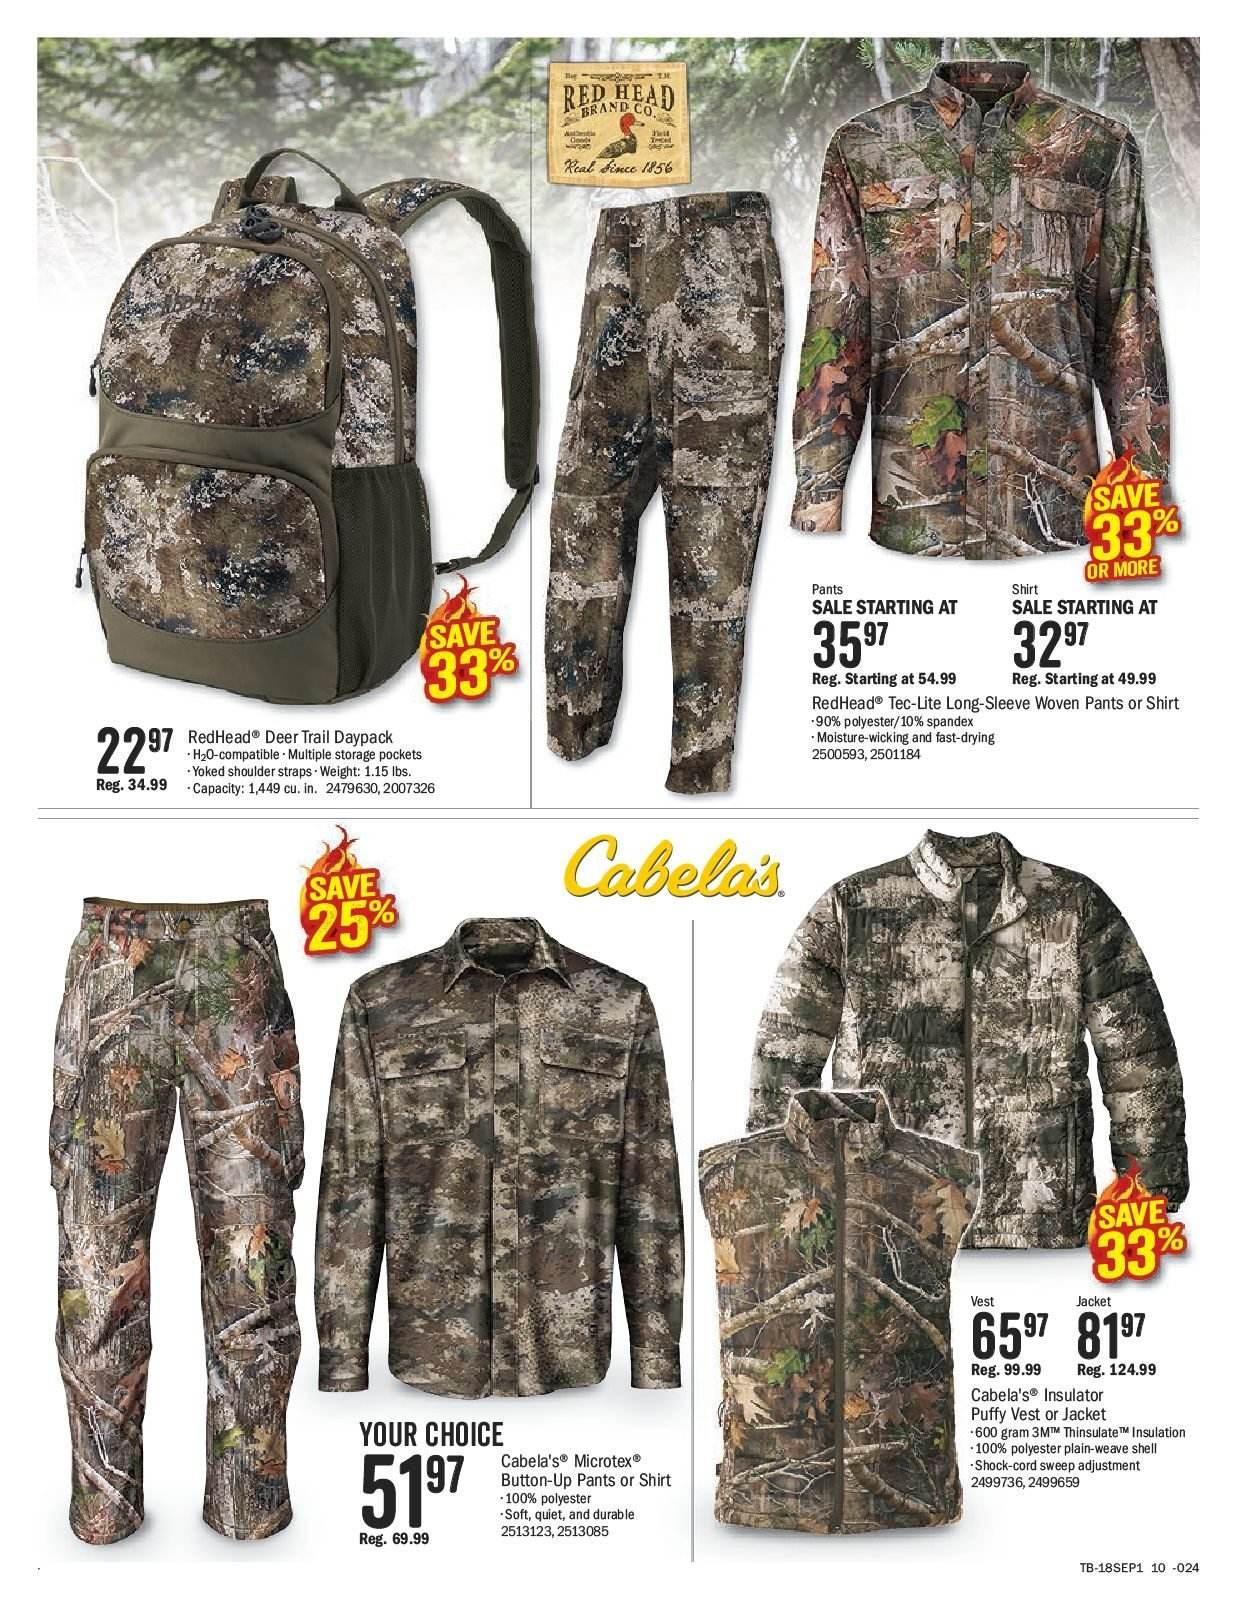 Bass Pro Shops Flyer  - August 27, 2018 - September 09, 2018. Page 10.